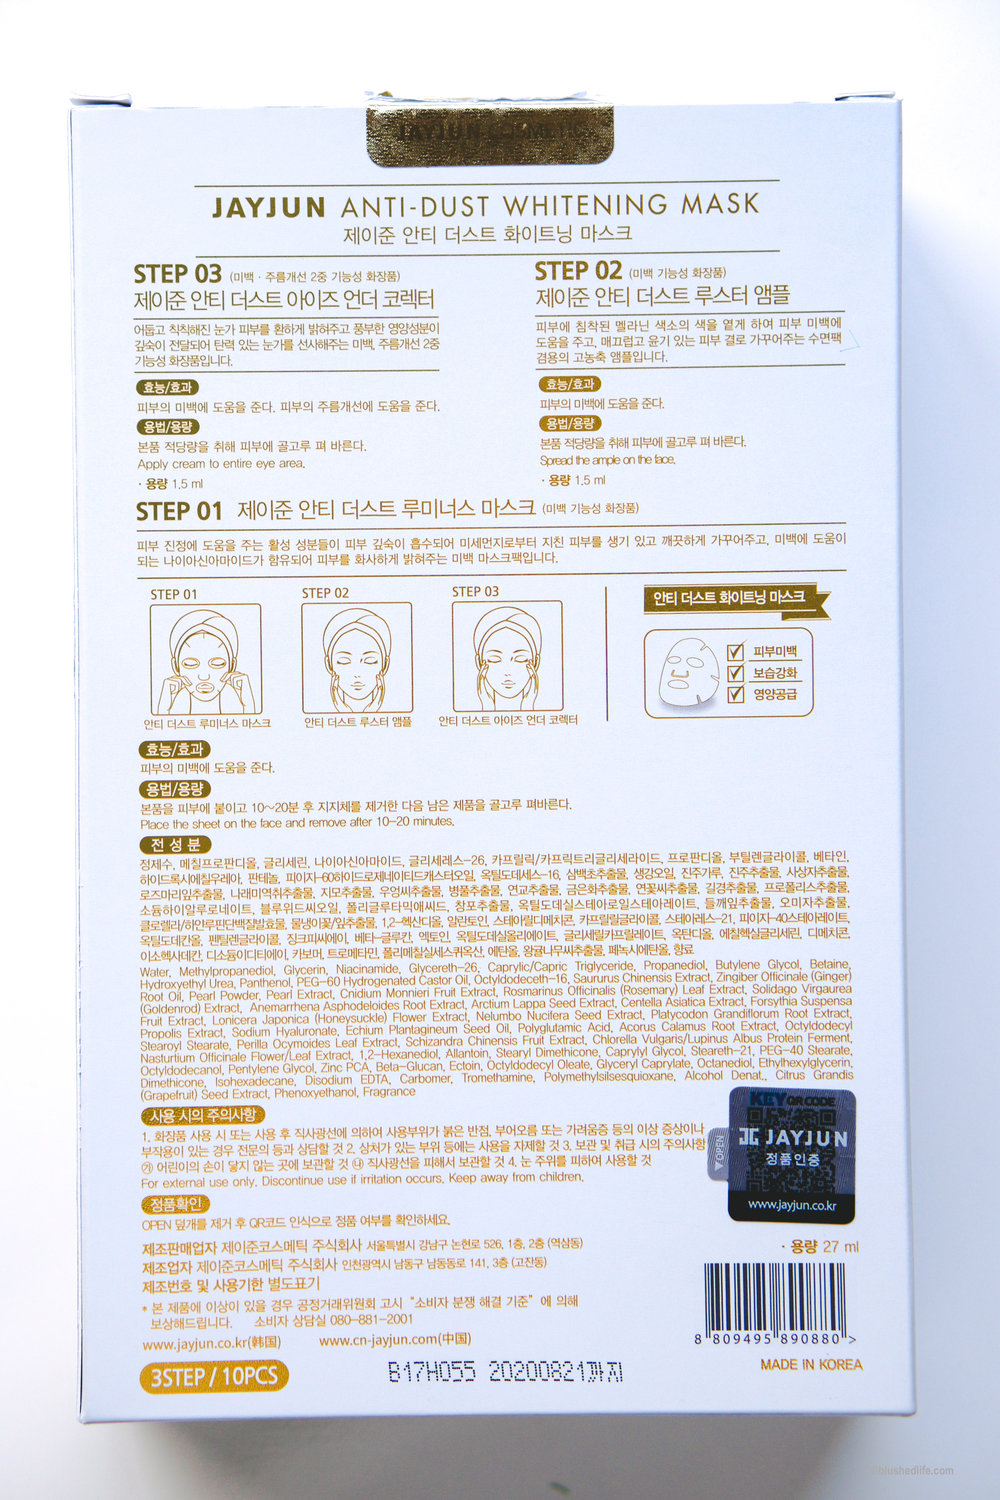 Jayjun AntiDust Whitening Mask Review_DSC07276-2.jpg